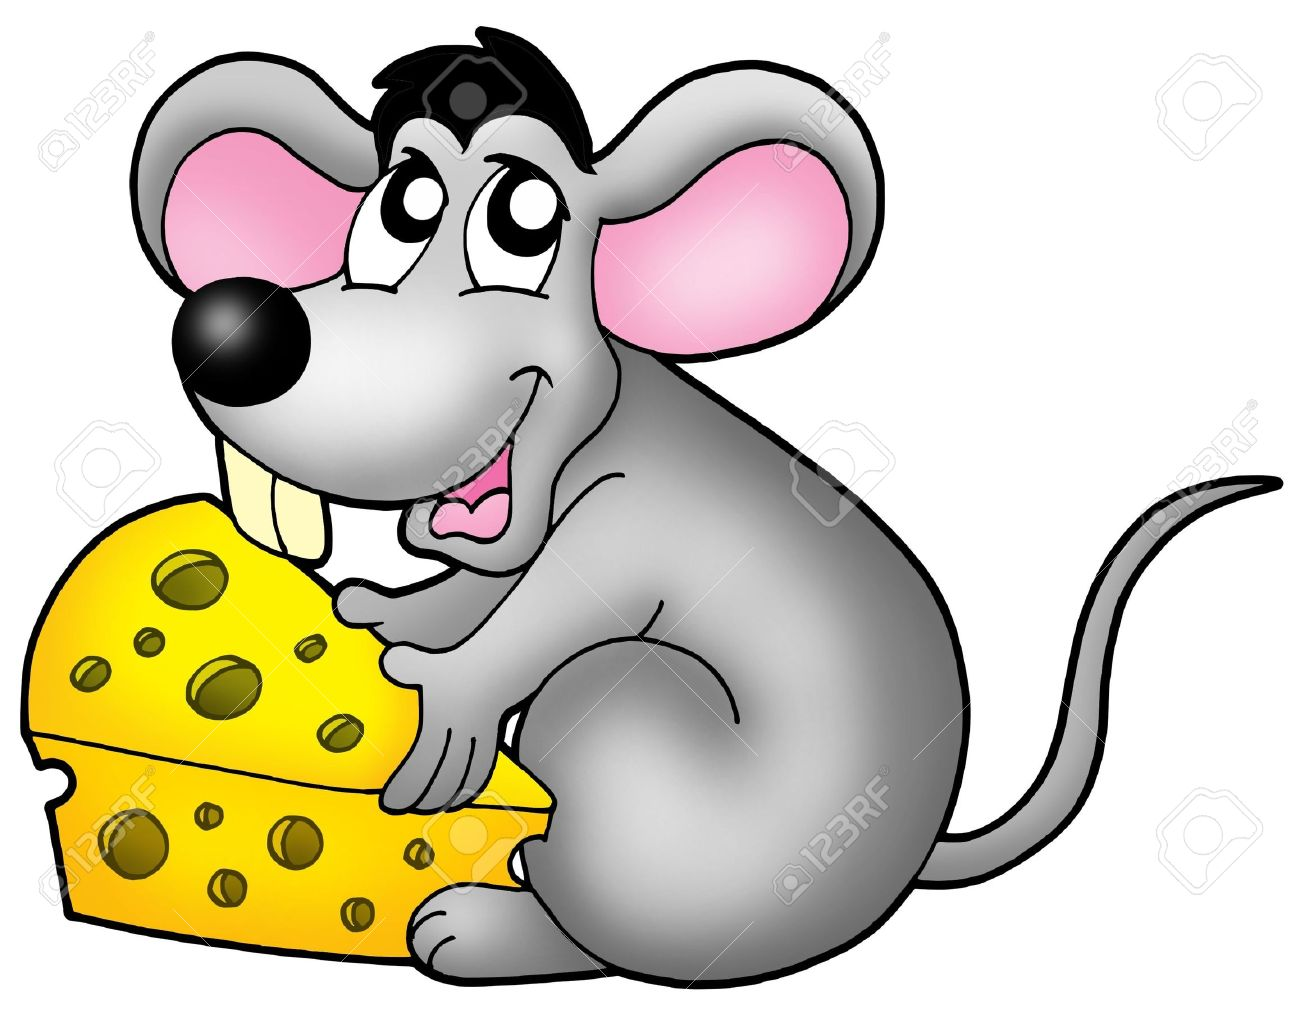 cute mouse holding cheese color illustration stock illustration 4422350